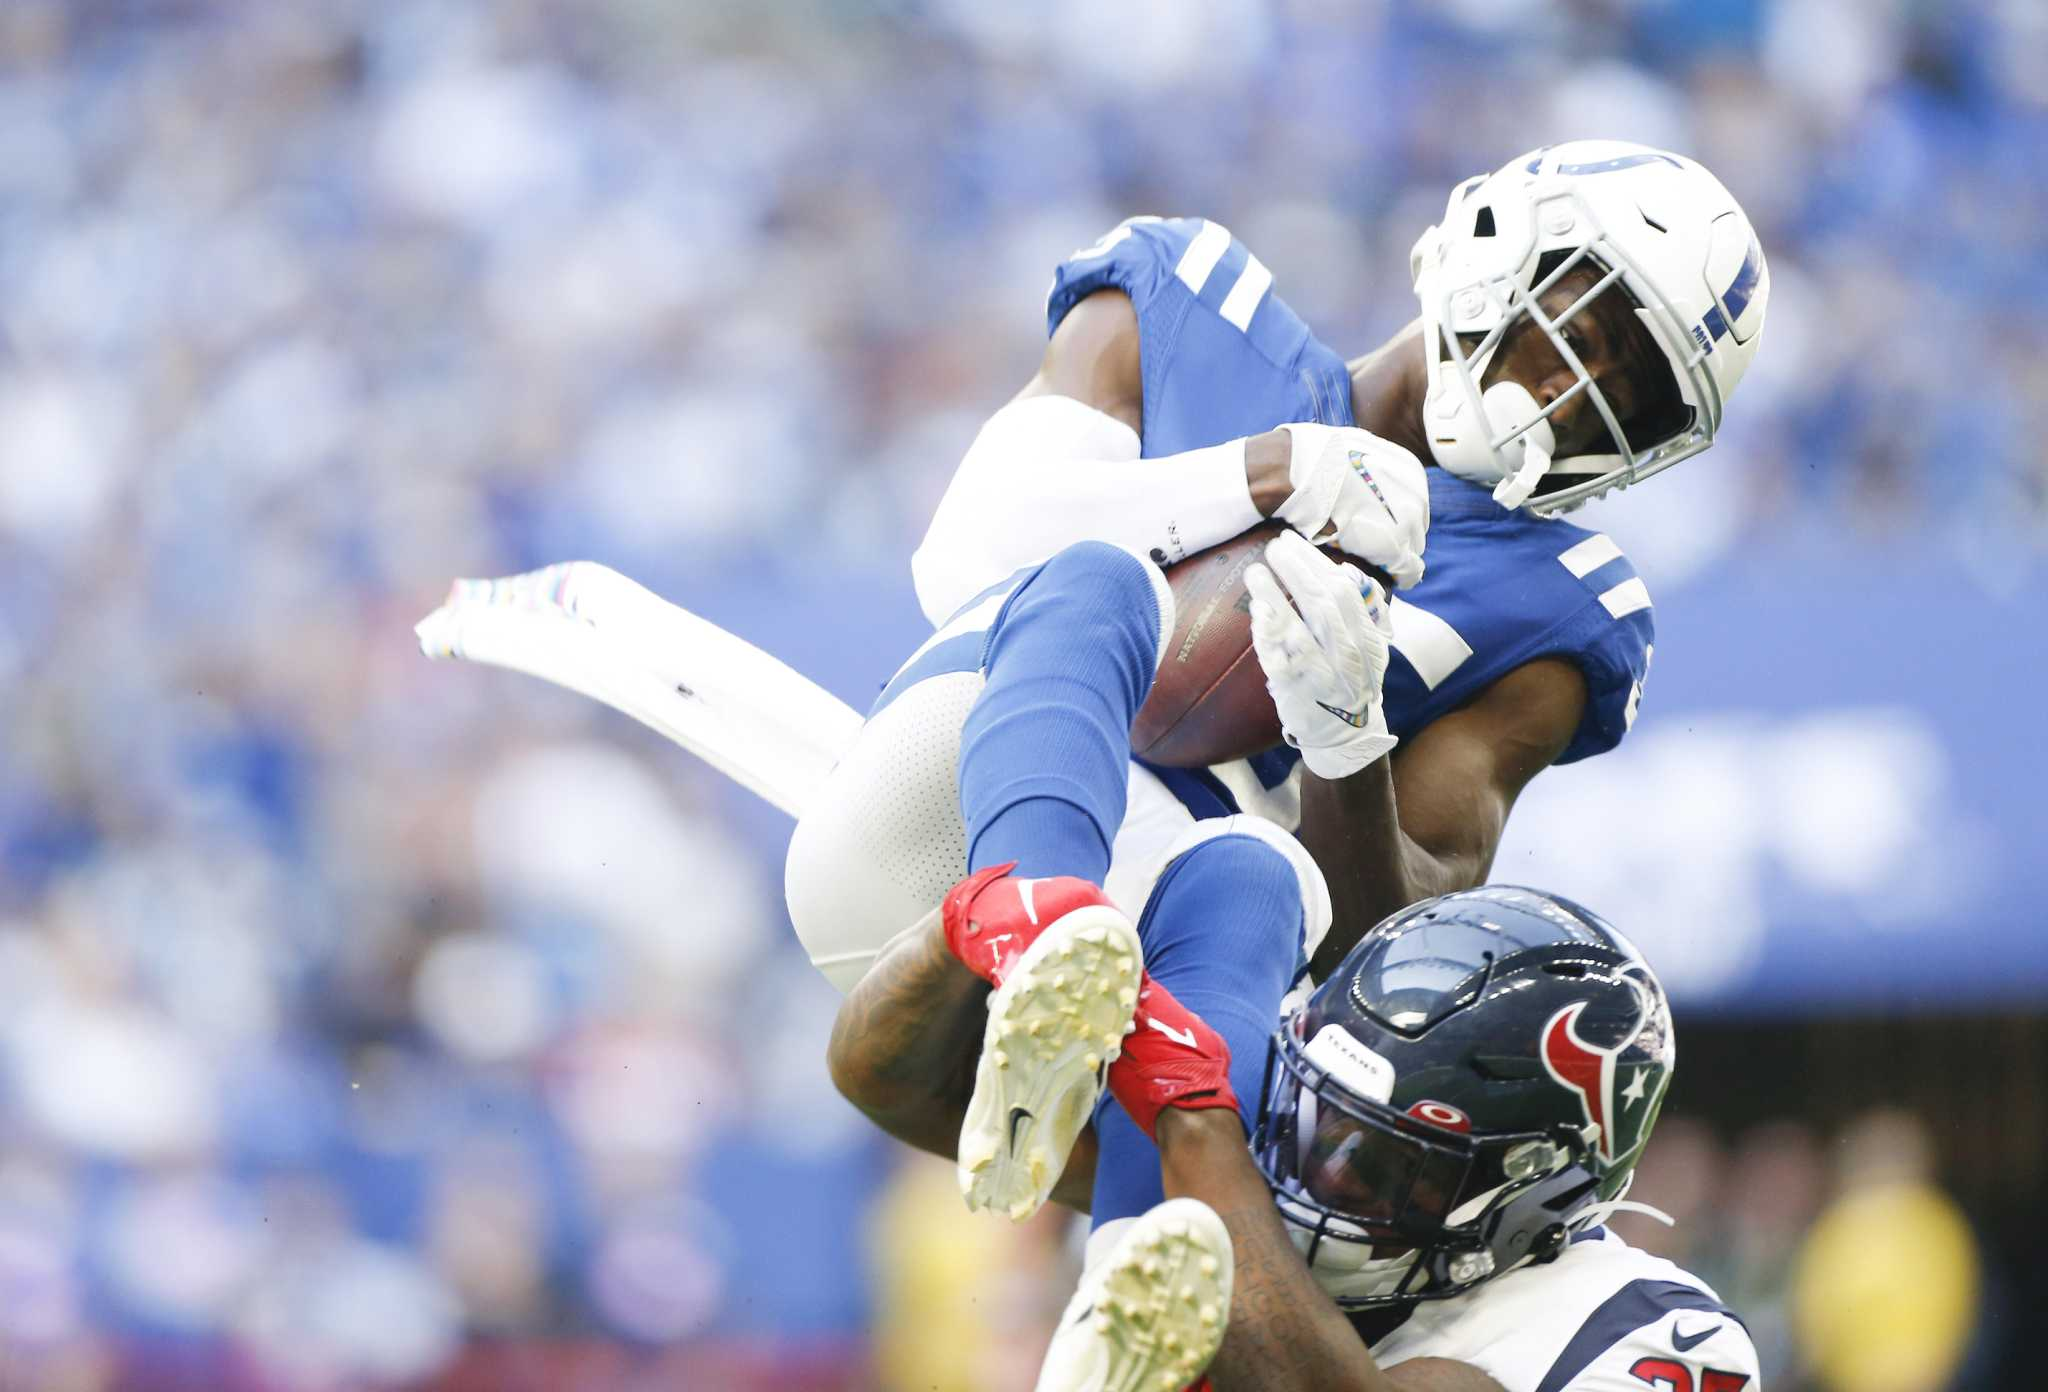 Smith: Another Sunday of maddening Texans football